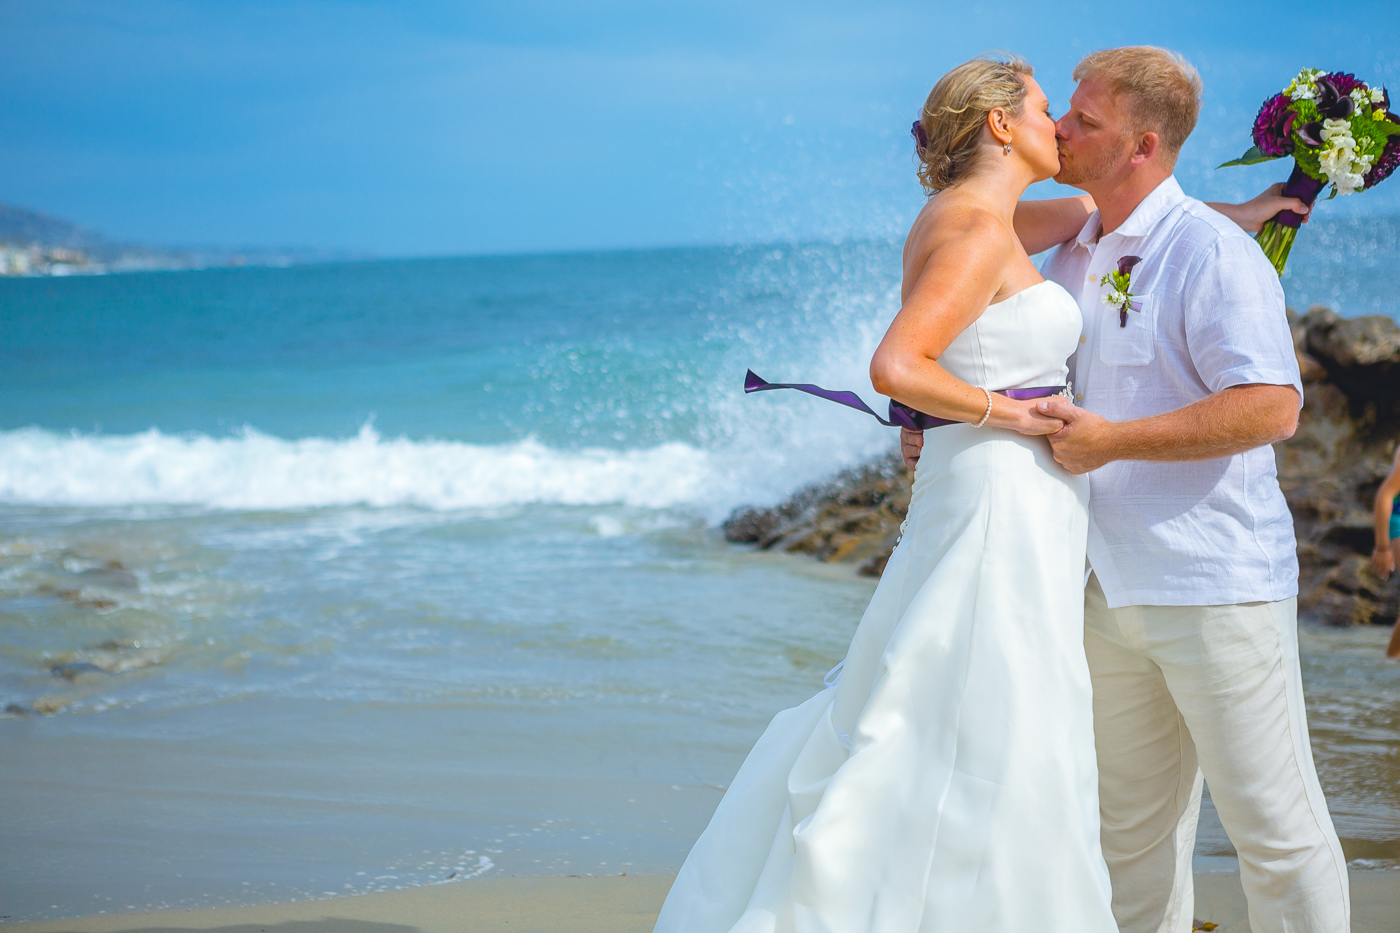 Couple kissing at amazing beach wedding in laguna beach